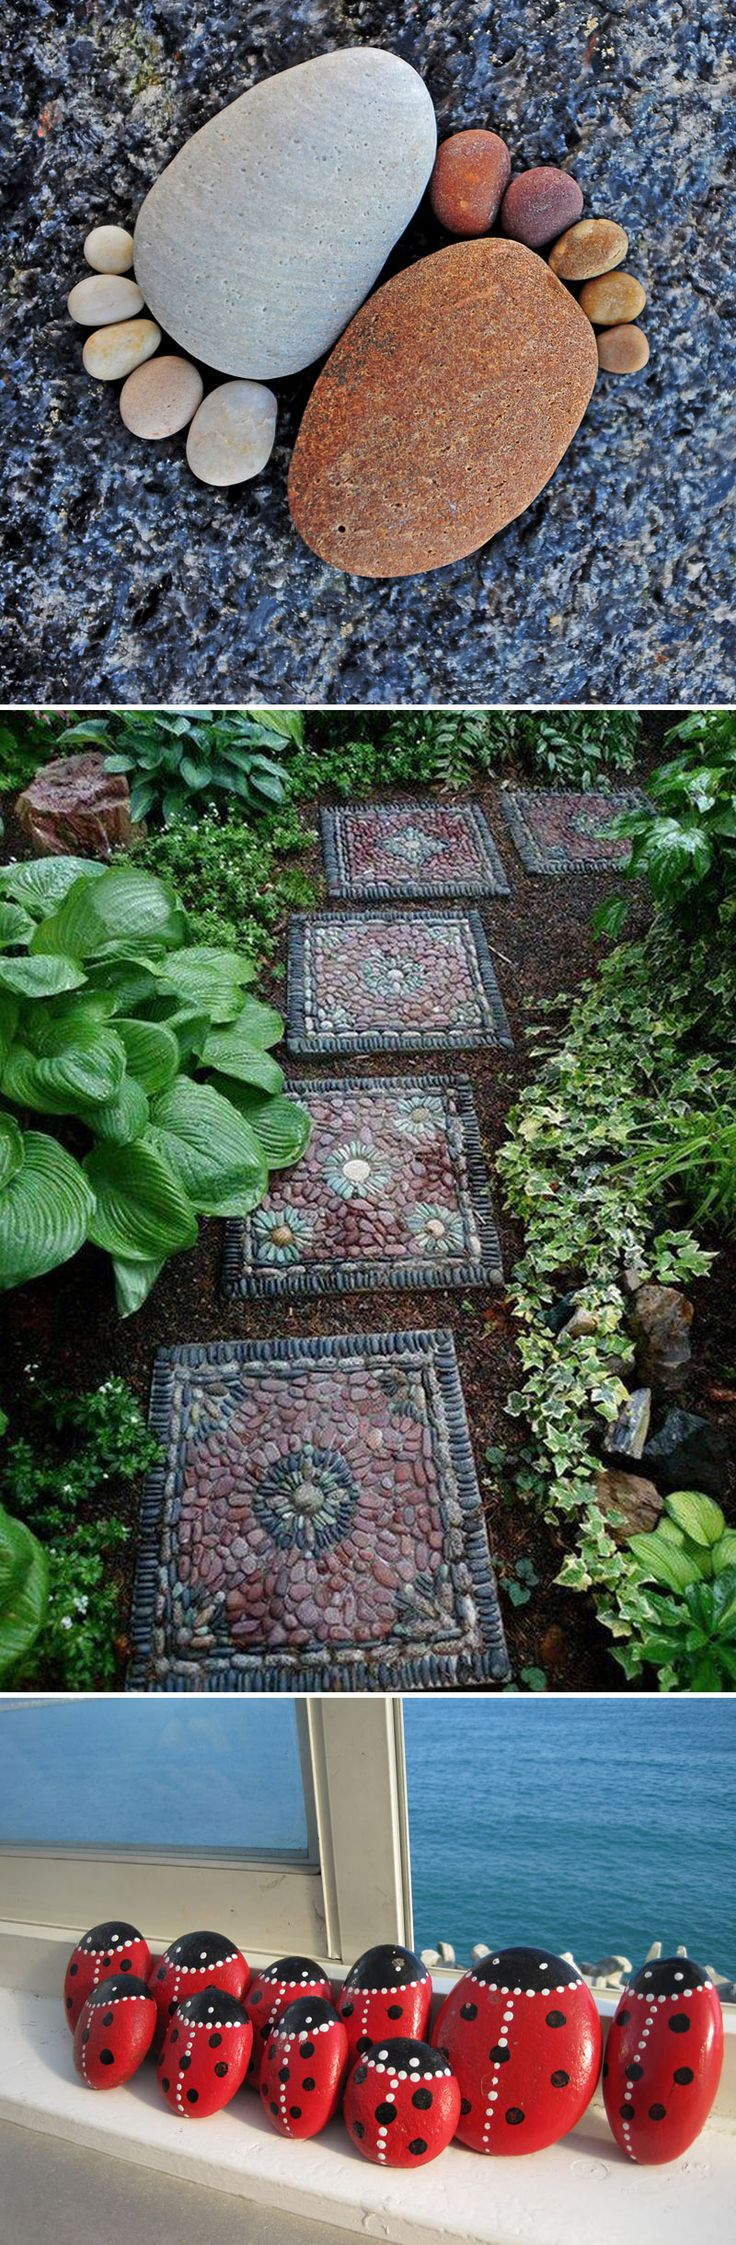 Creative, Easy and Artsy Ways to Use Rocks in the Garden!